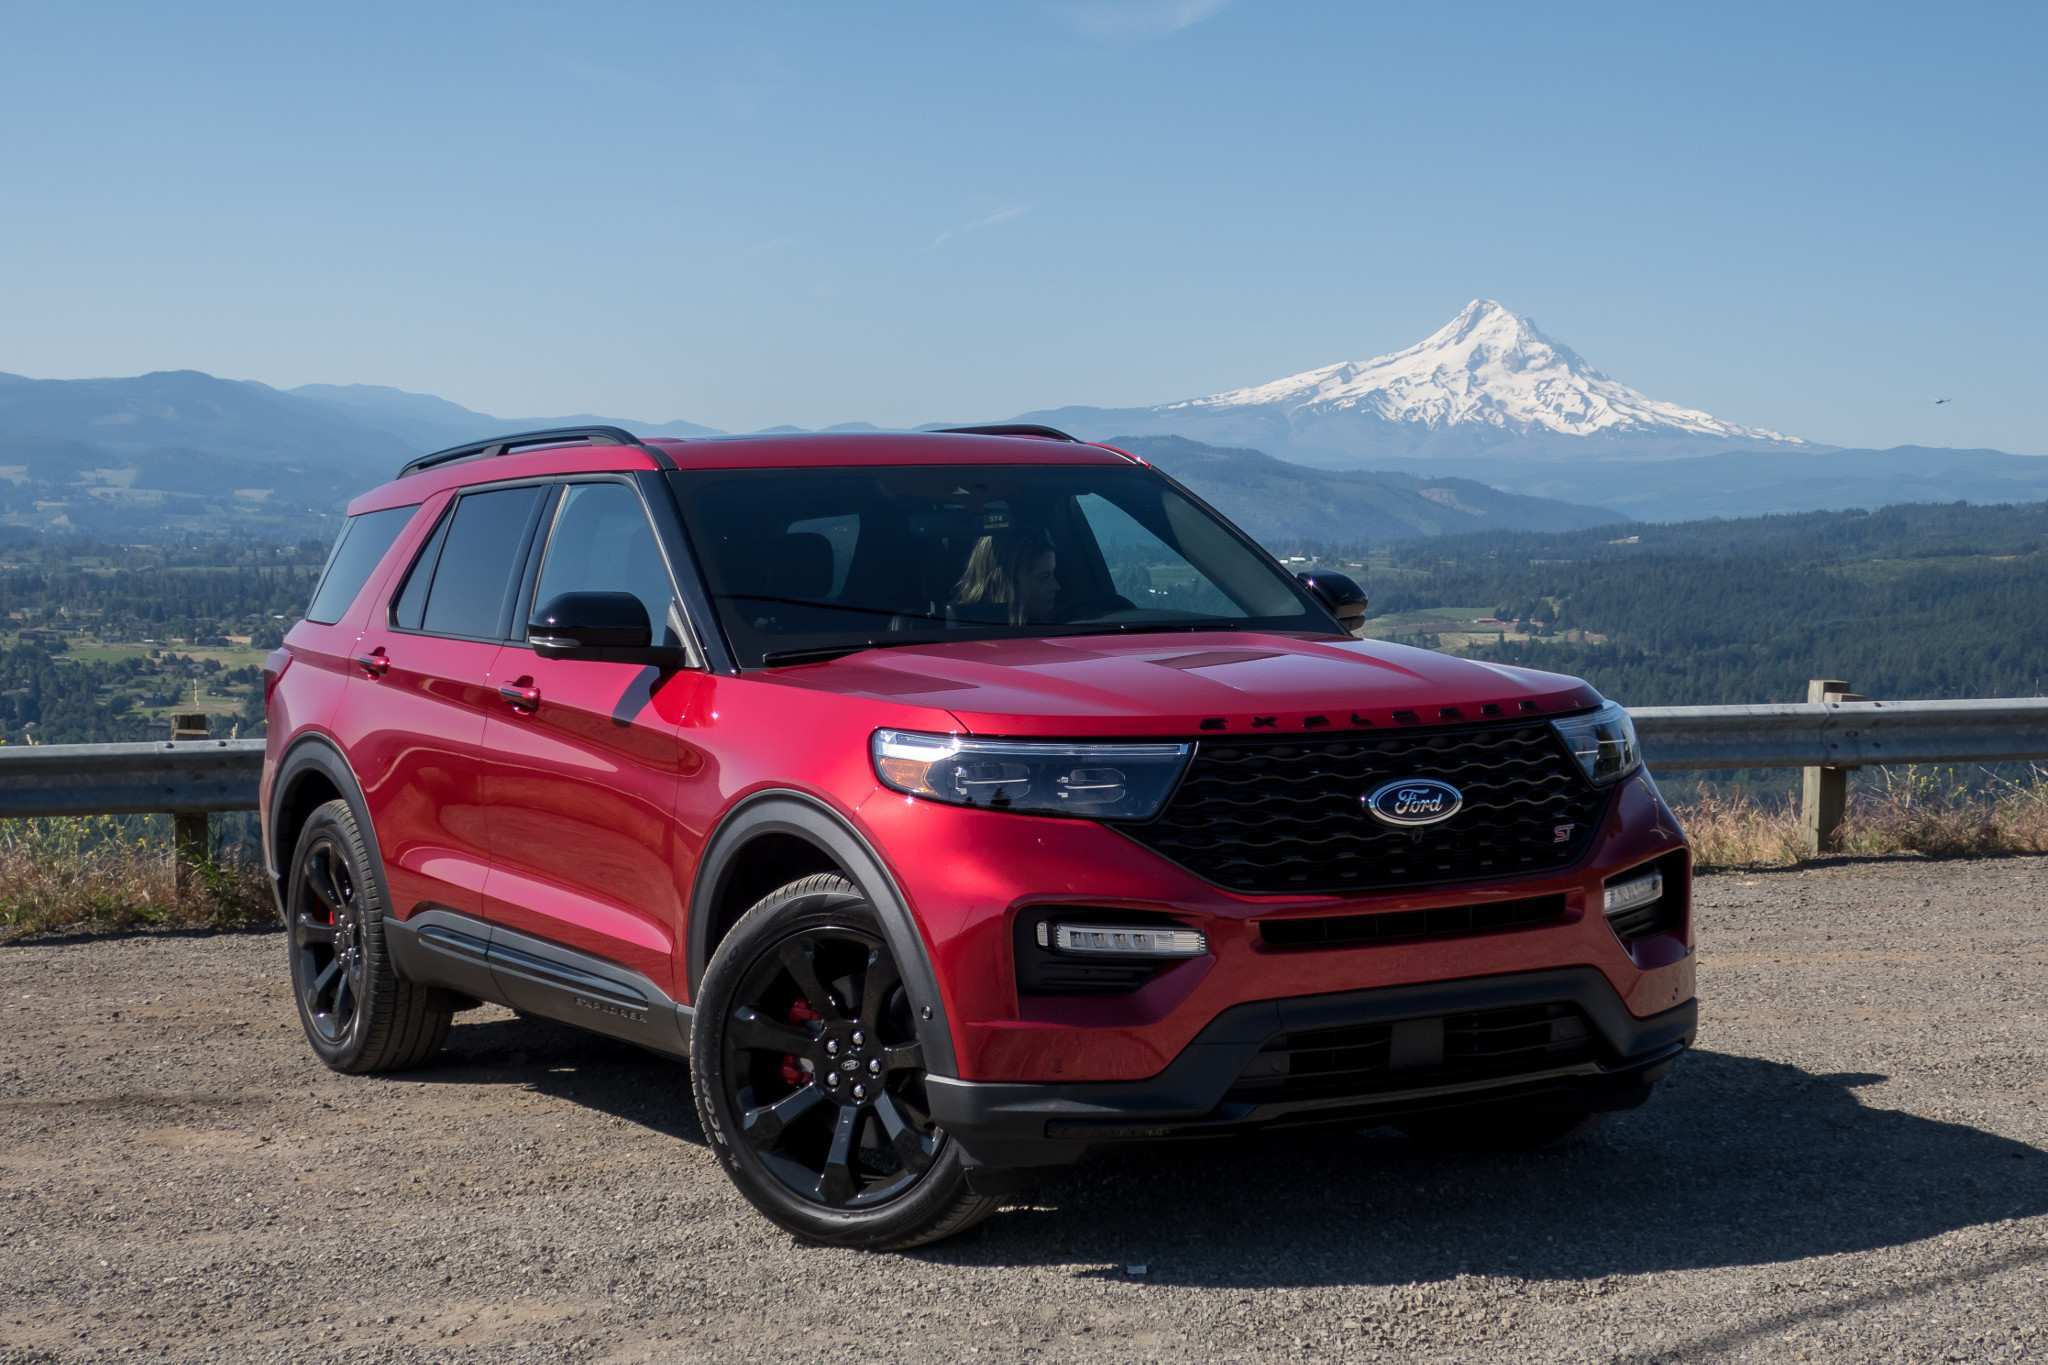 90 New Price Of 2020 Ford Explorer Configurations